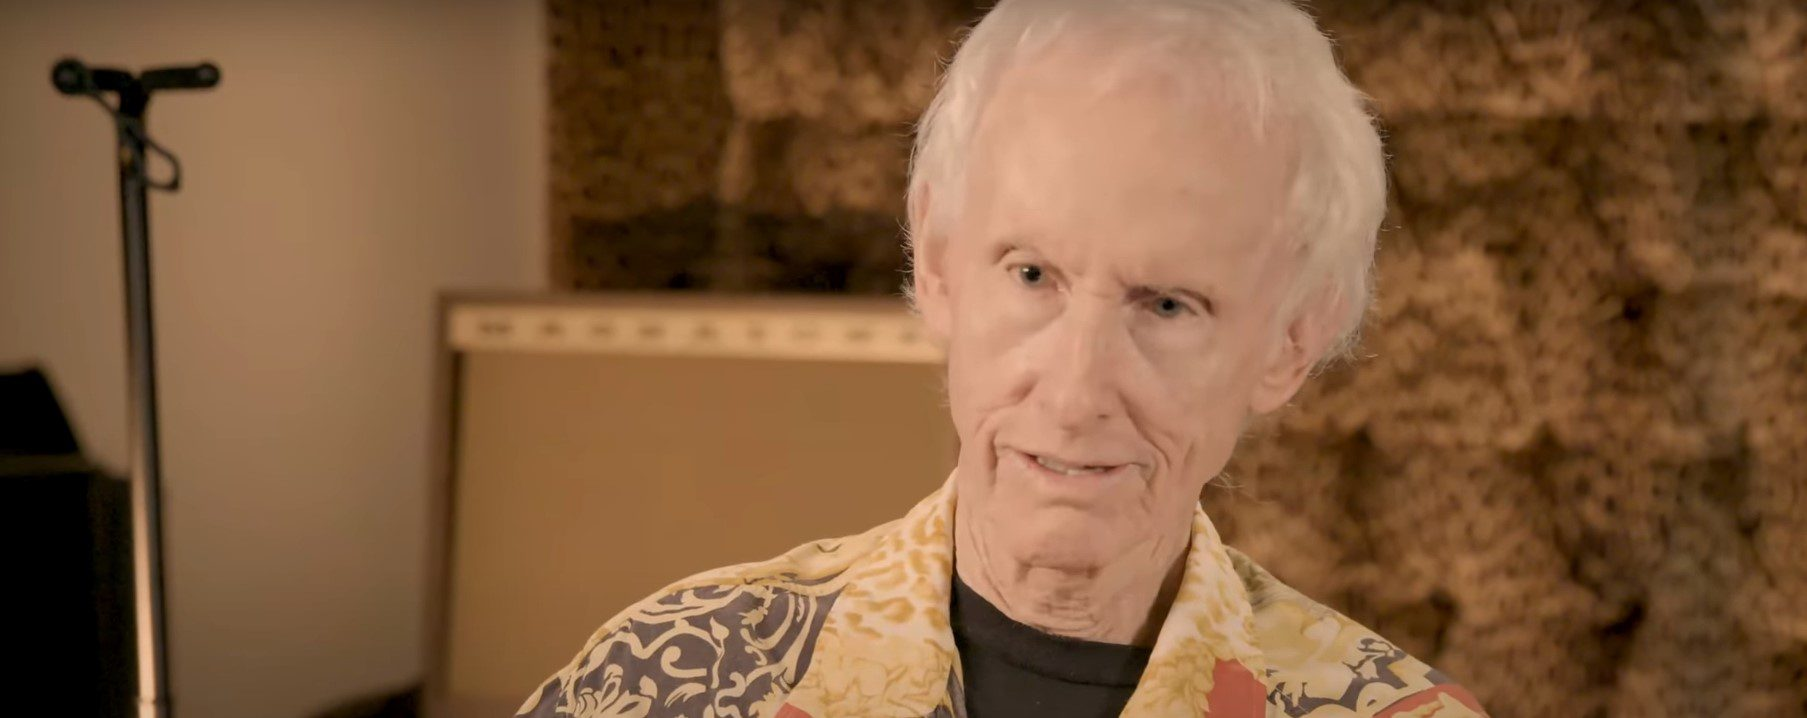 Robby Krieger Net Worth rounds north of US $15 million